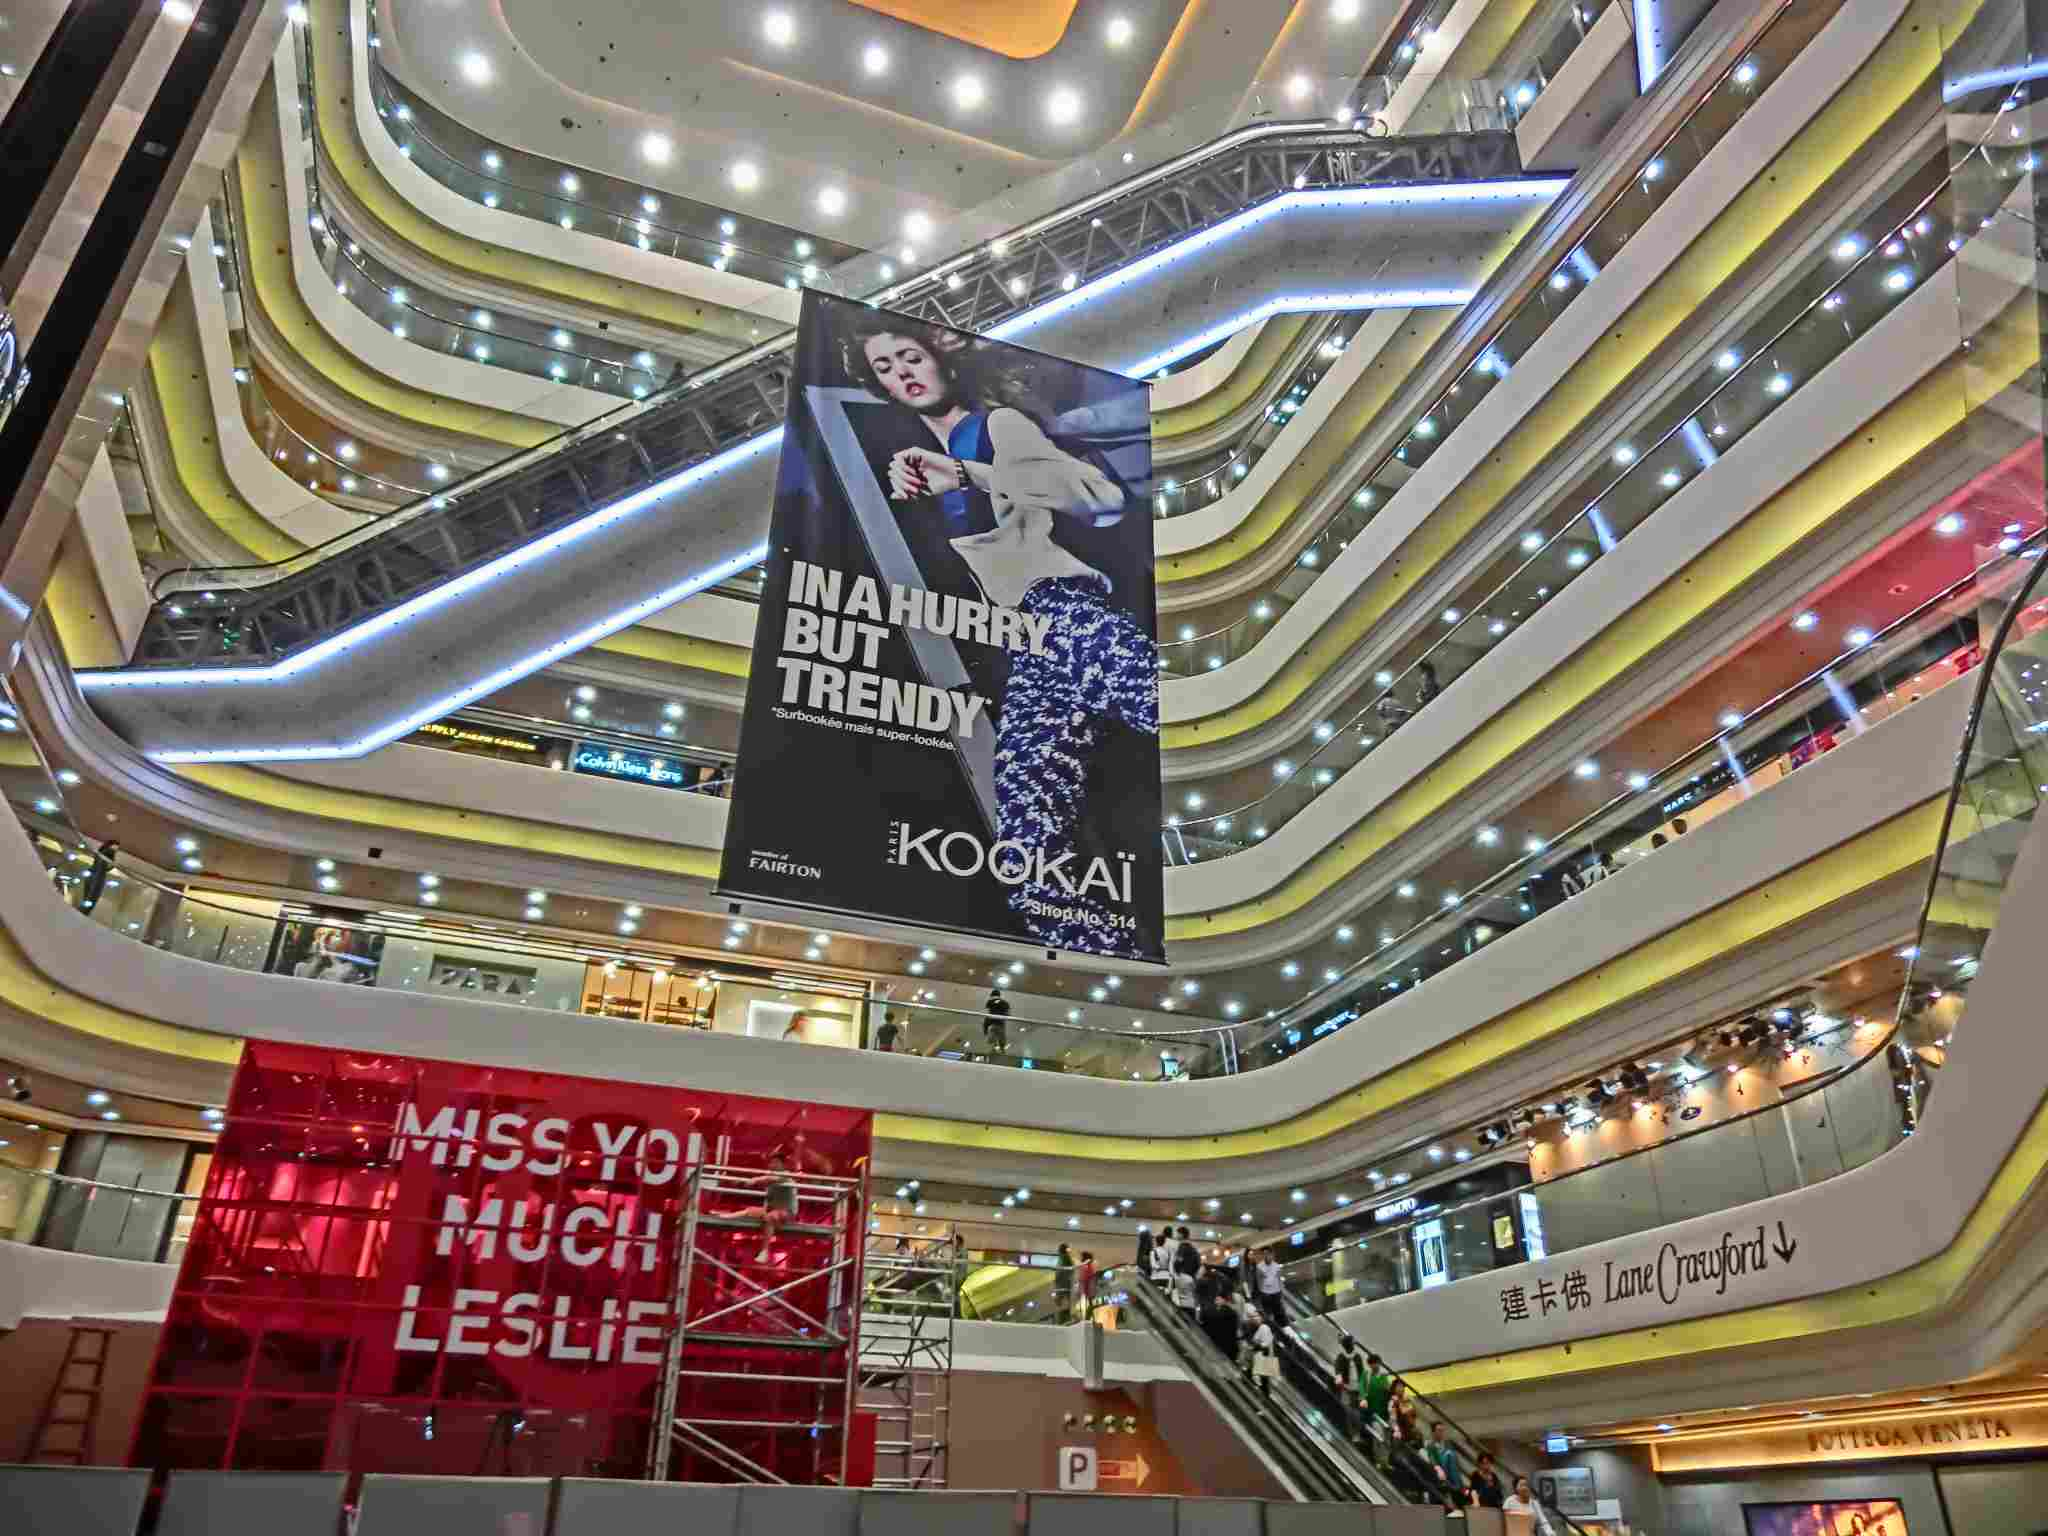 Escalators and many floors of Times Square